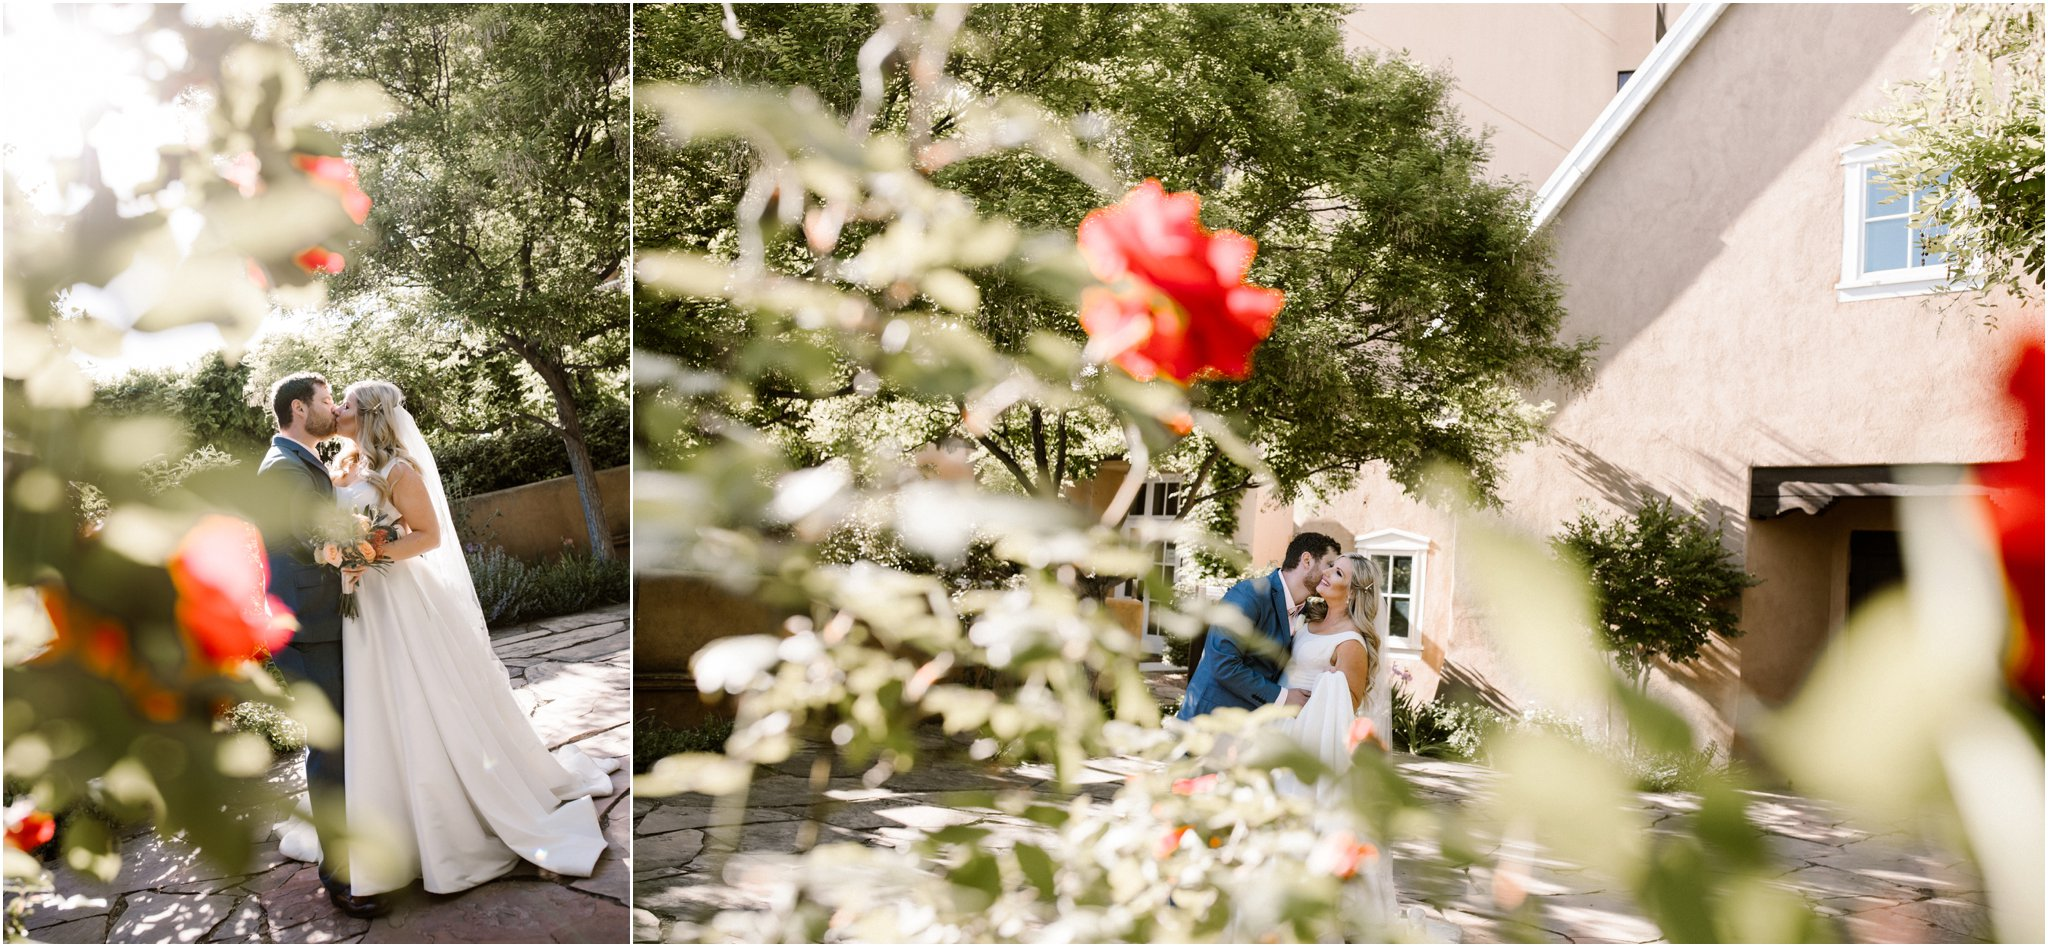 Albuquerque wedding photography by Blue Rose Studios in New Mexico